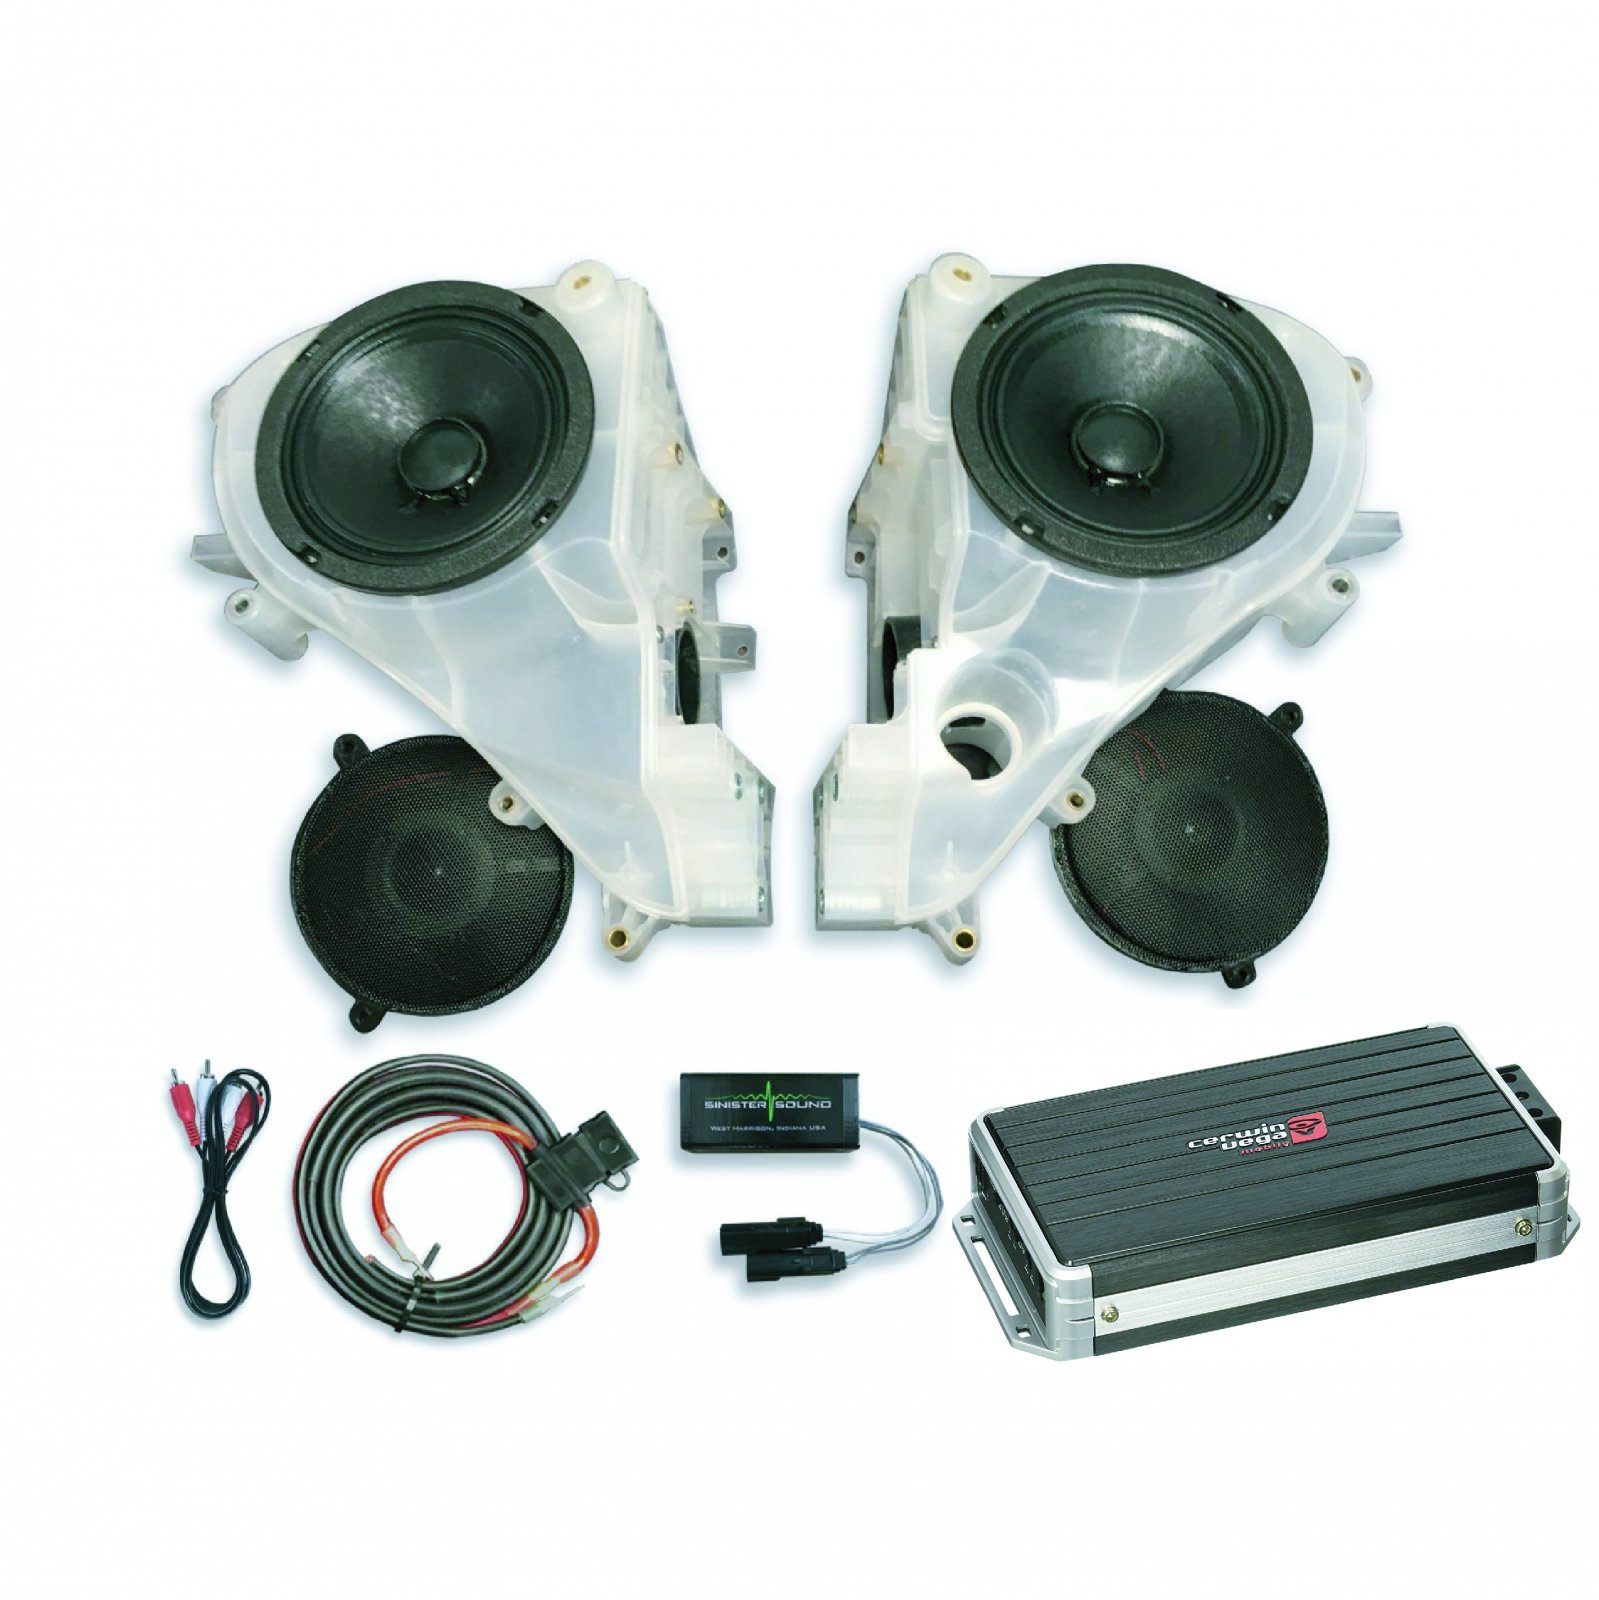 14-18 Street Glide SinisterSound Fairing System w/CERWIN VEGA B52 and Line Level